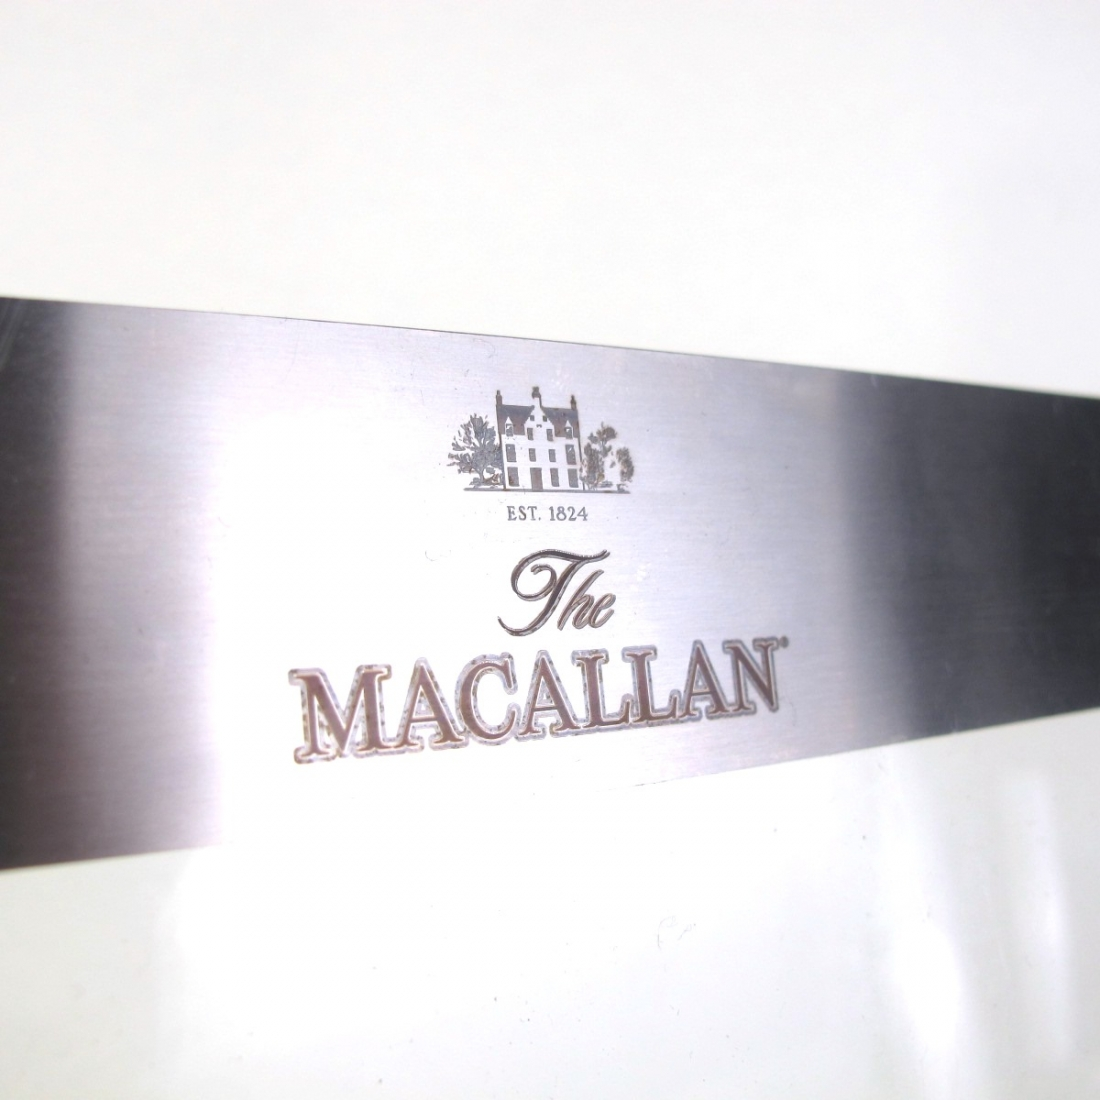 Miscellaneous Macallan Collectibles